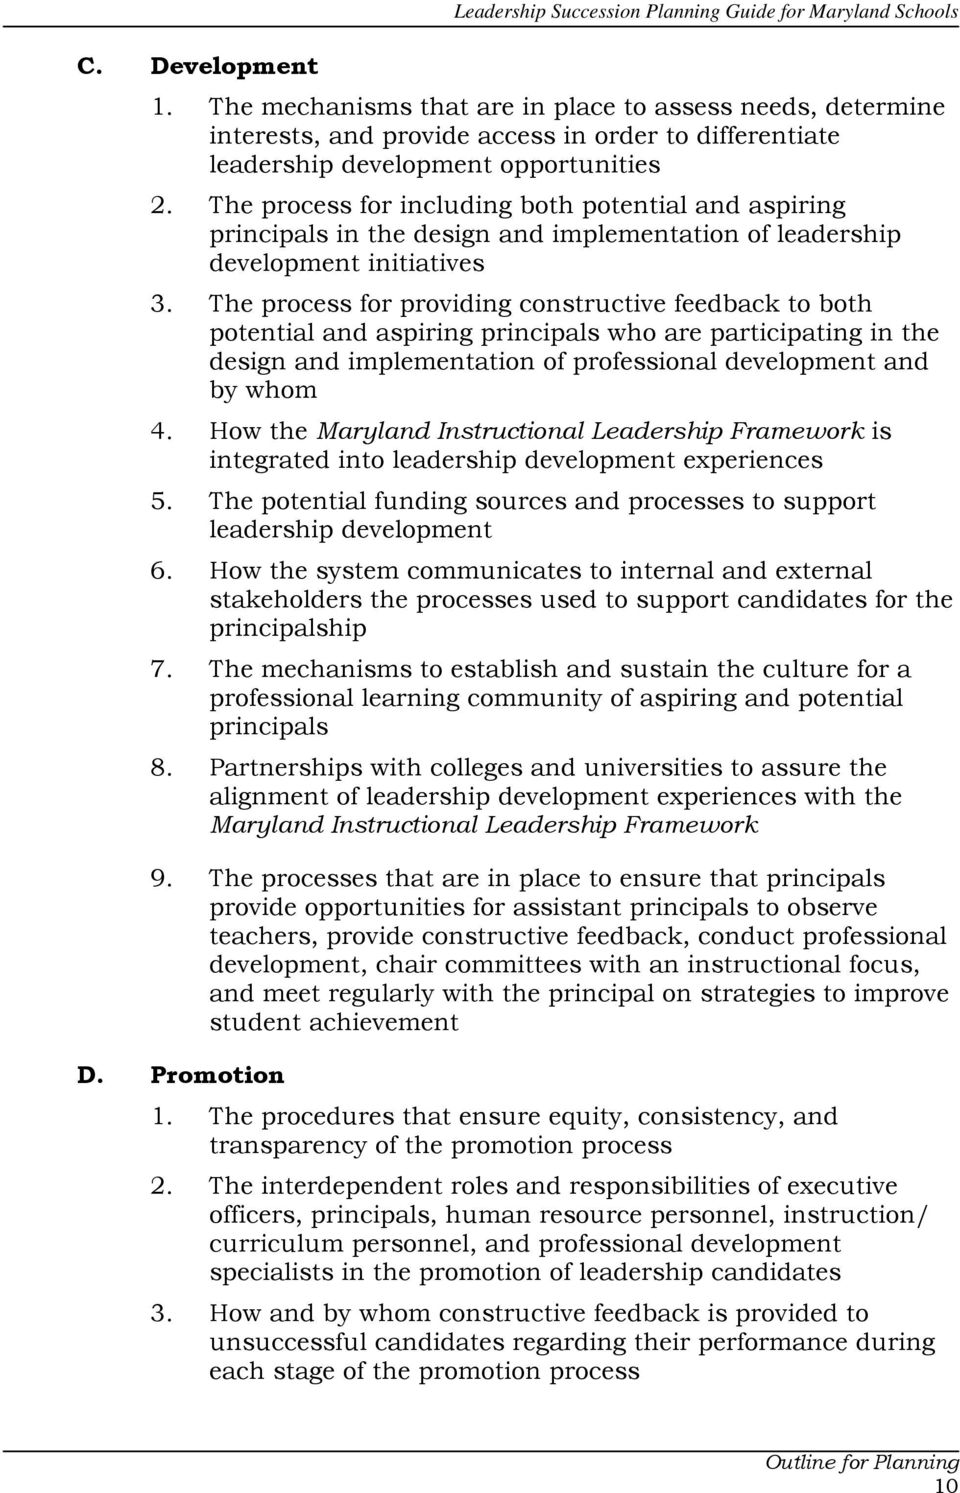 The process for providing constructive feedback to both potential and aspiring principals who are participating in the design and implementation of professional development and by whom 4.